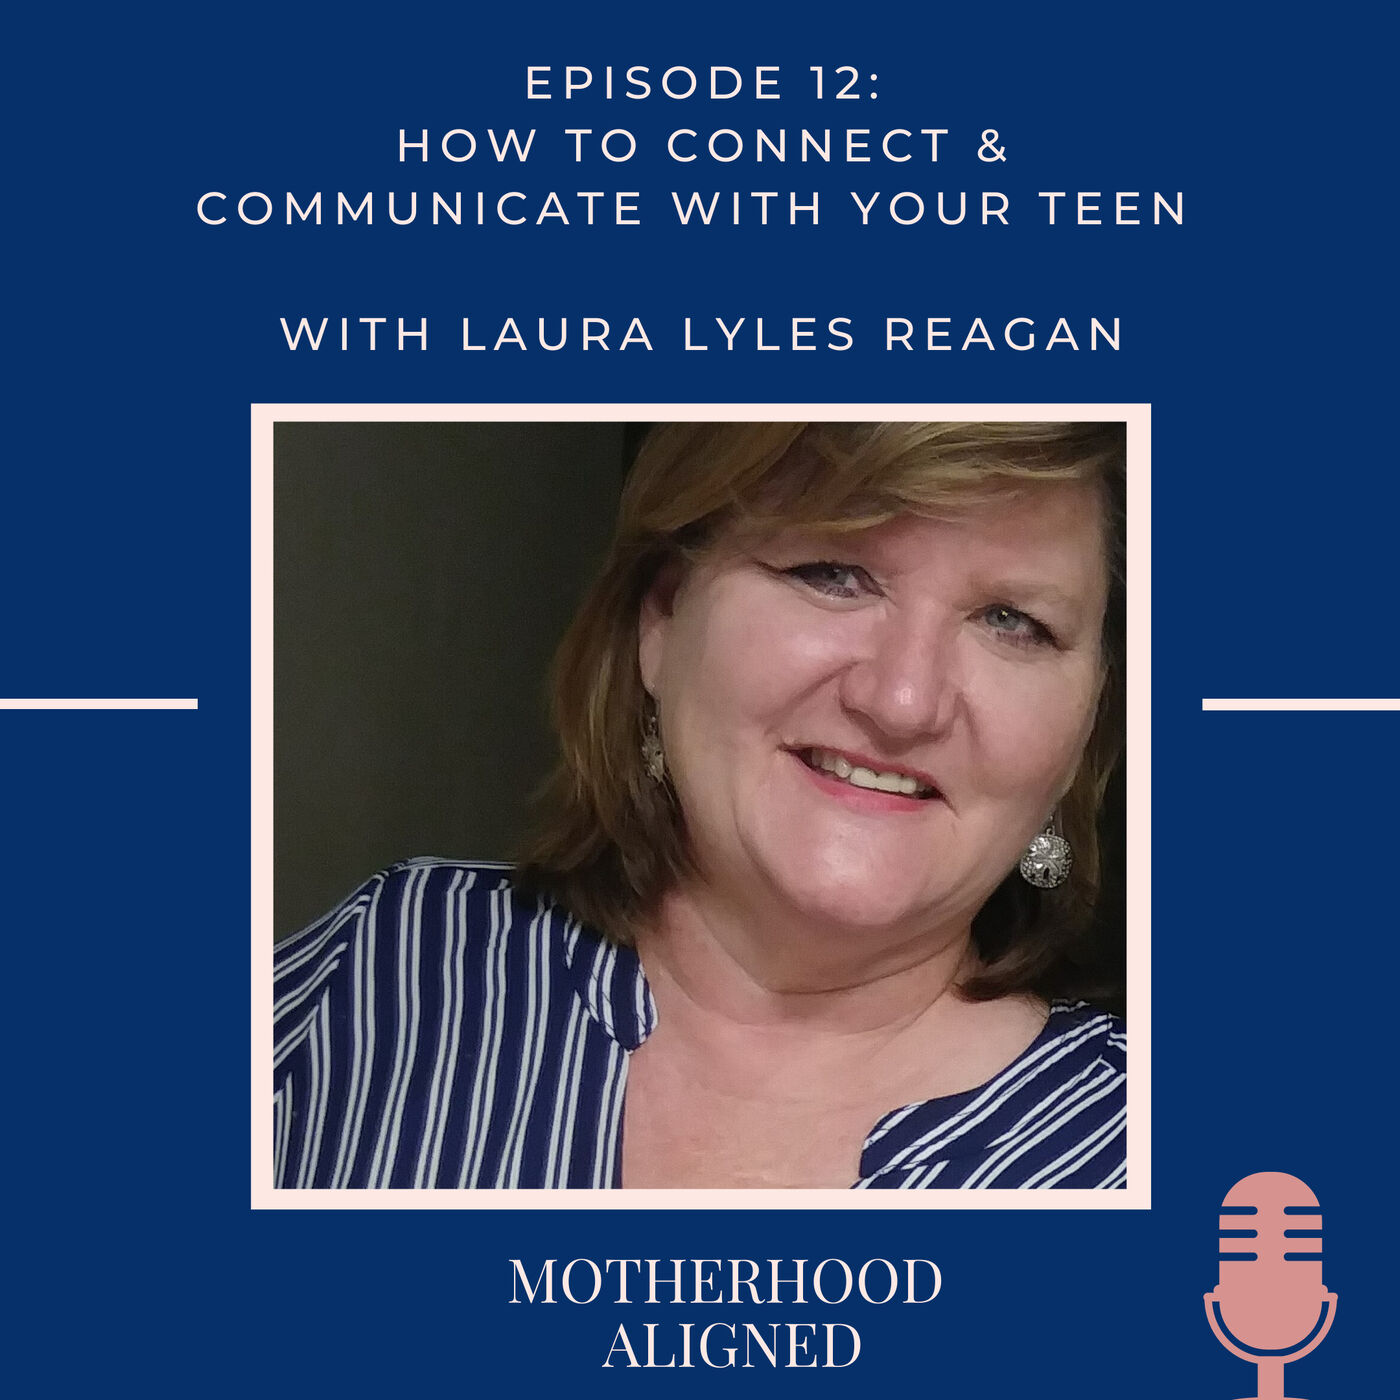 How to Connect & Communicate with your Teen with Laura Lyles Reagan